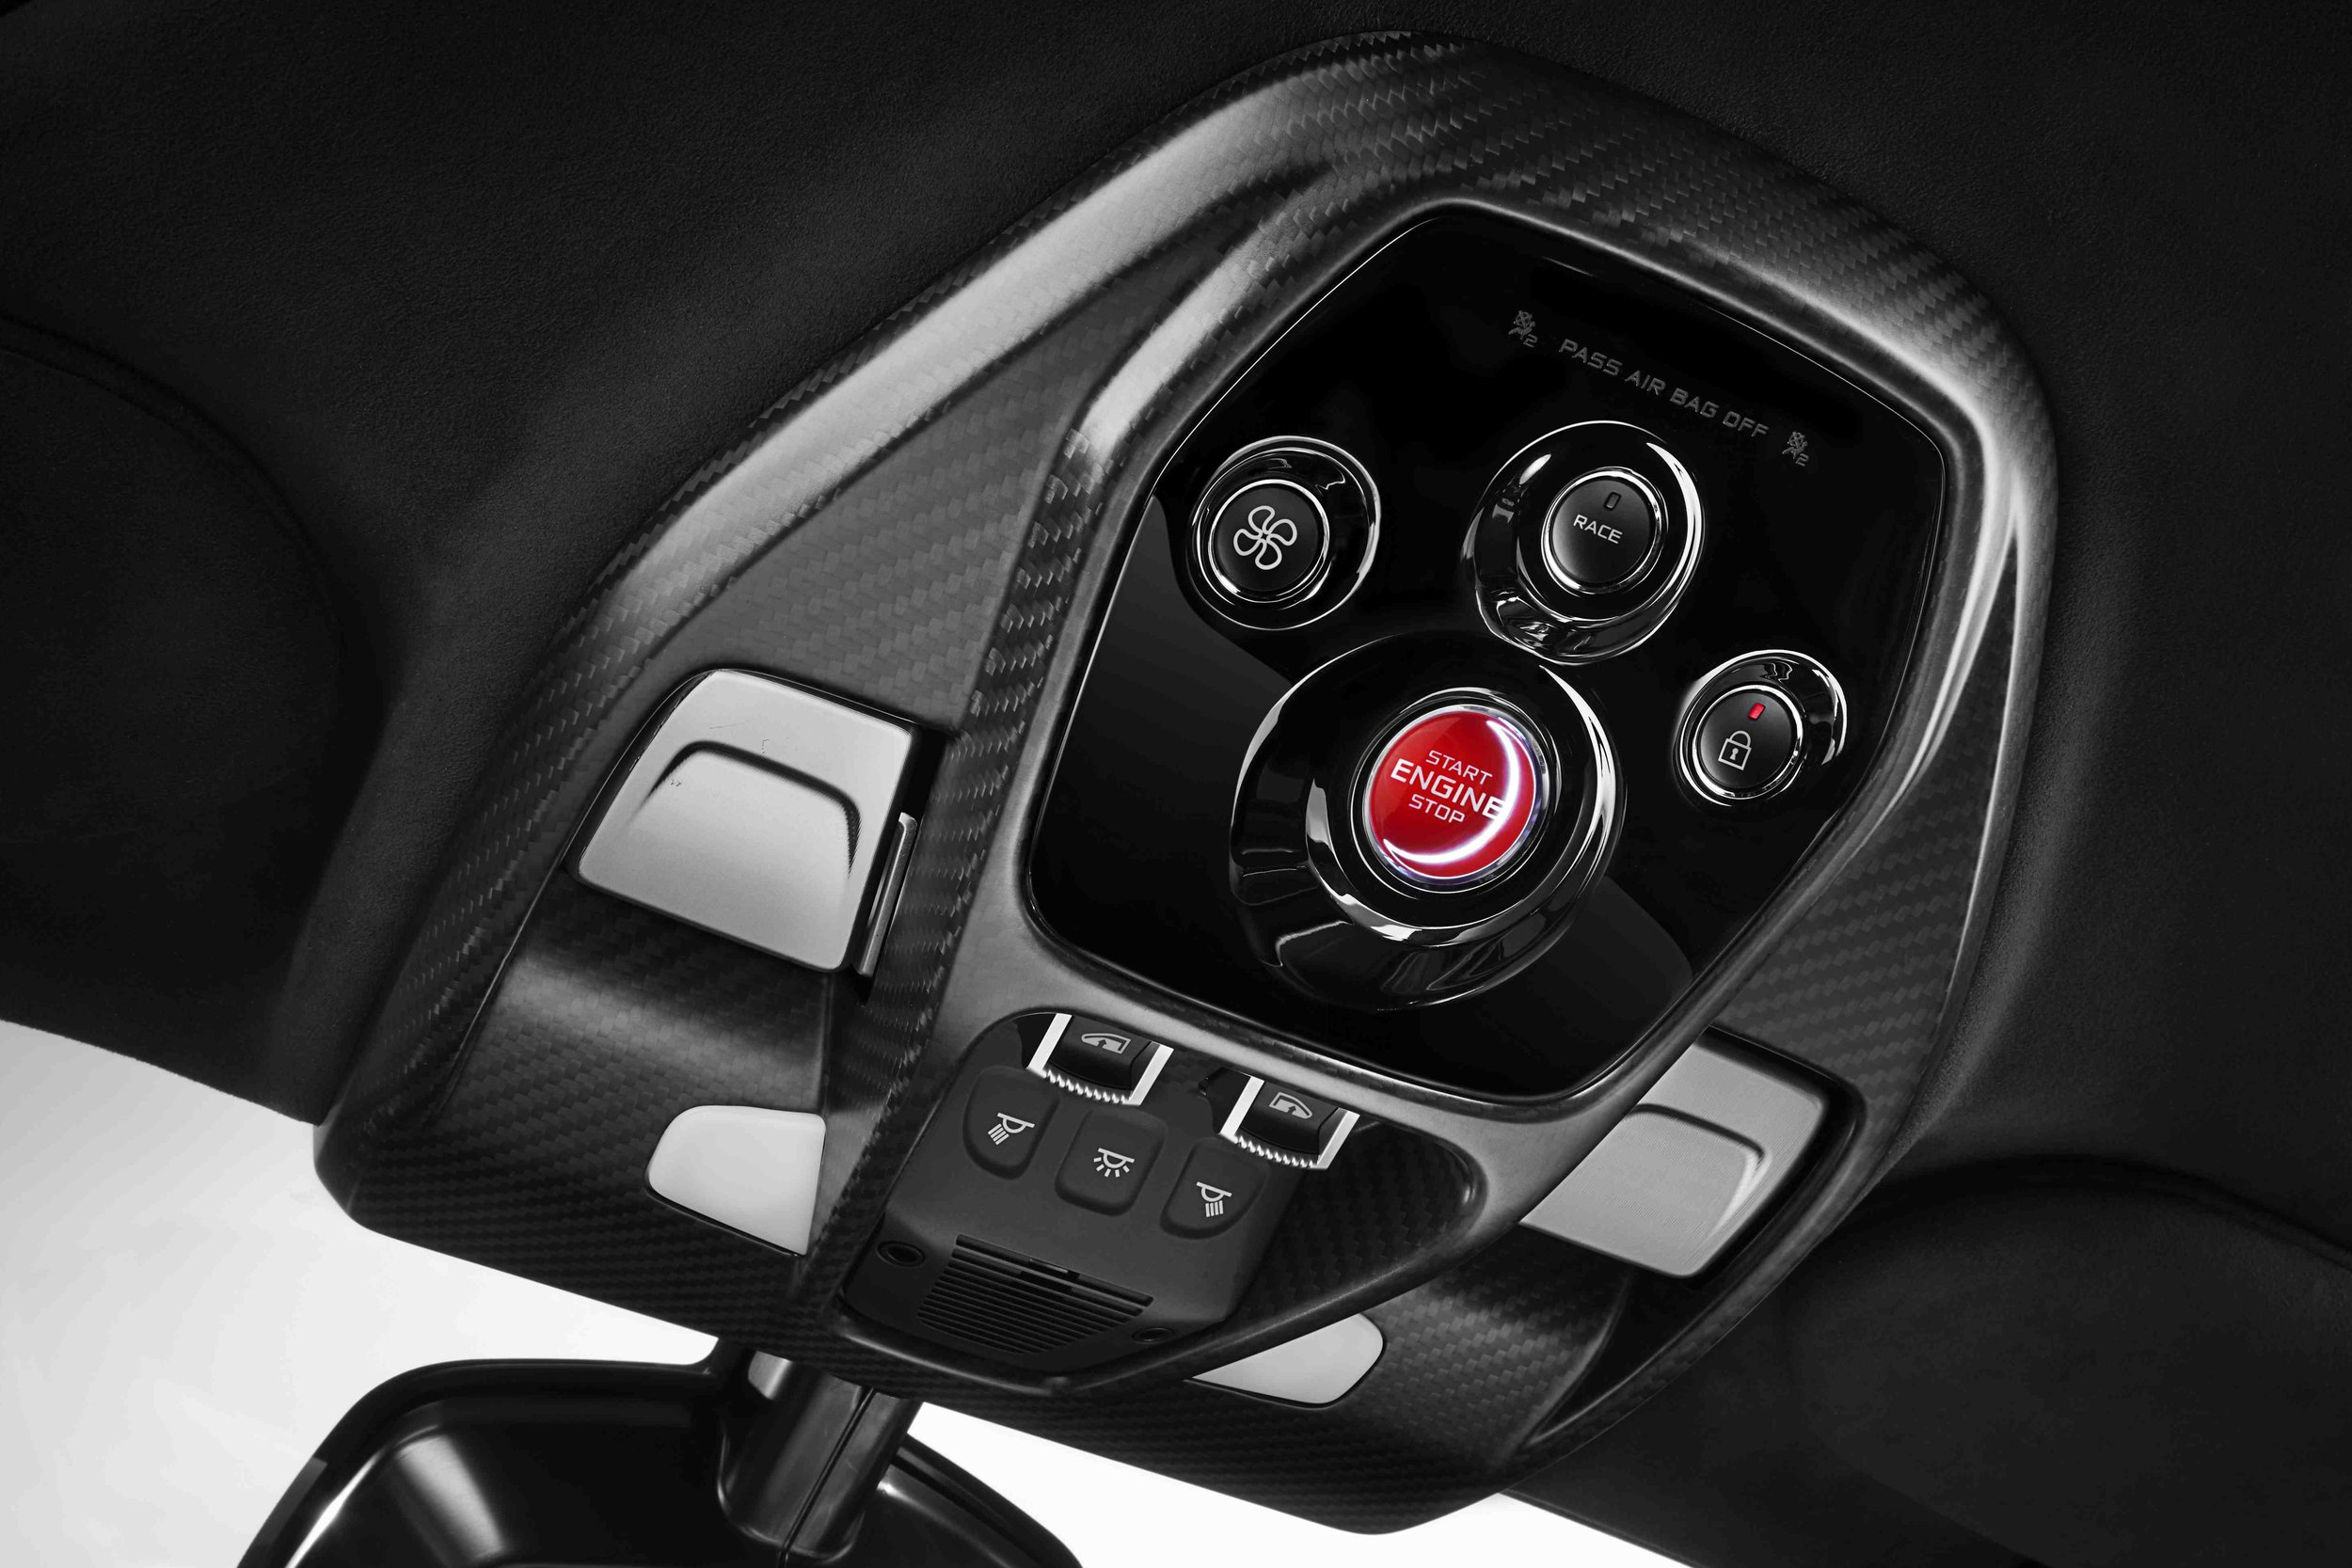 8618McLaren-Senna-roof-mounted-controls.jpg